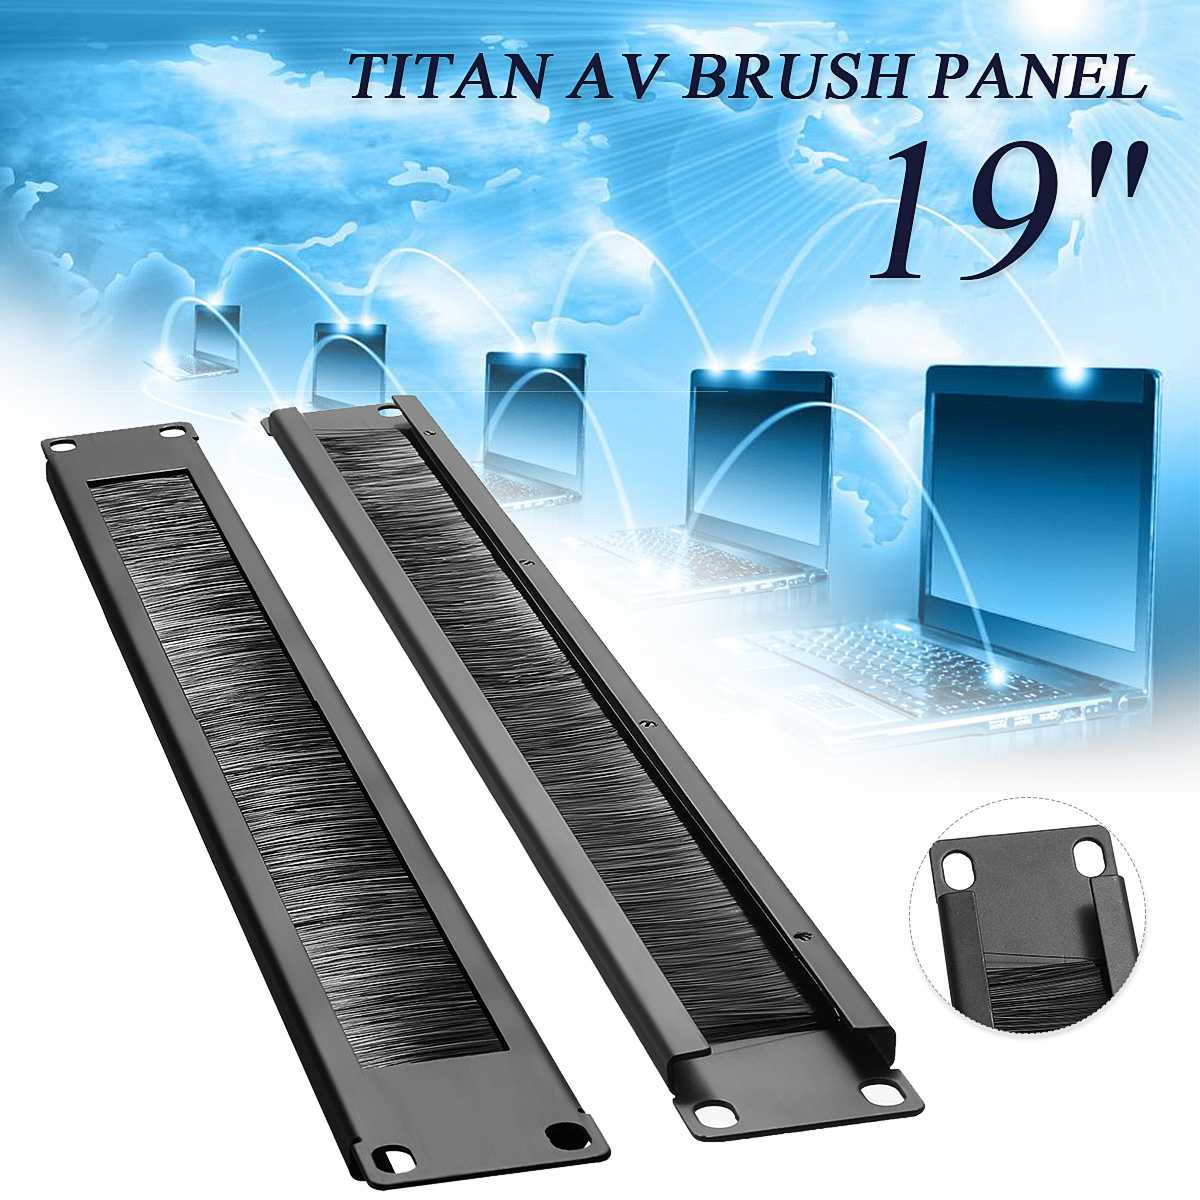 1U 19 Inch Rack Mount IT Network Cabinet Brush Panel Bar Slot For Cable Management(China)